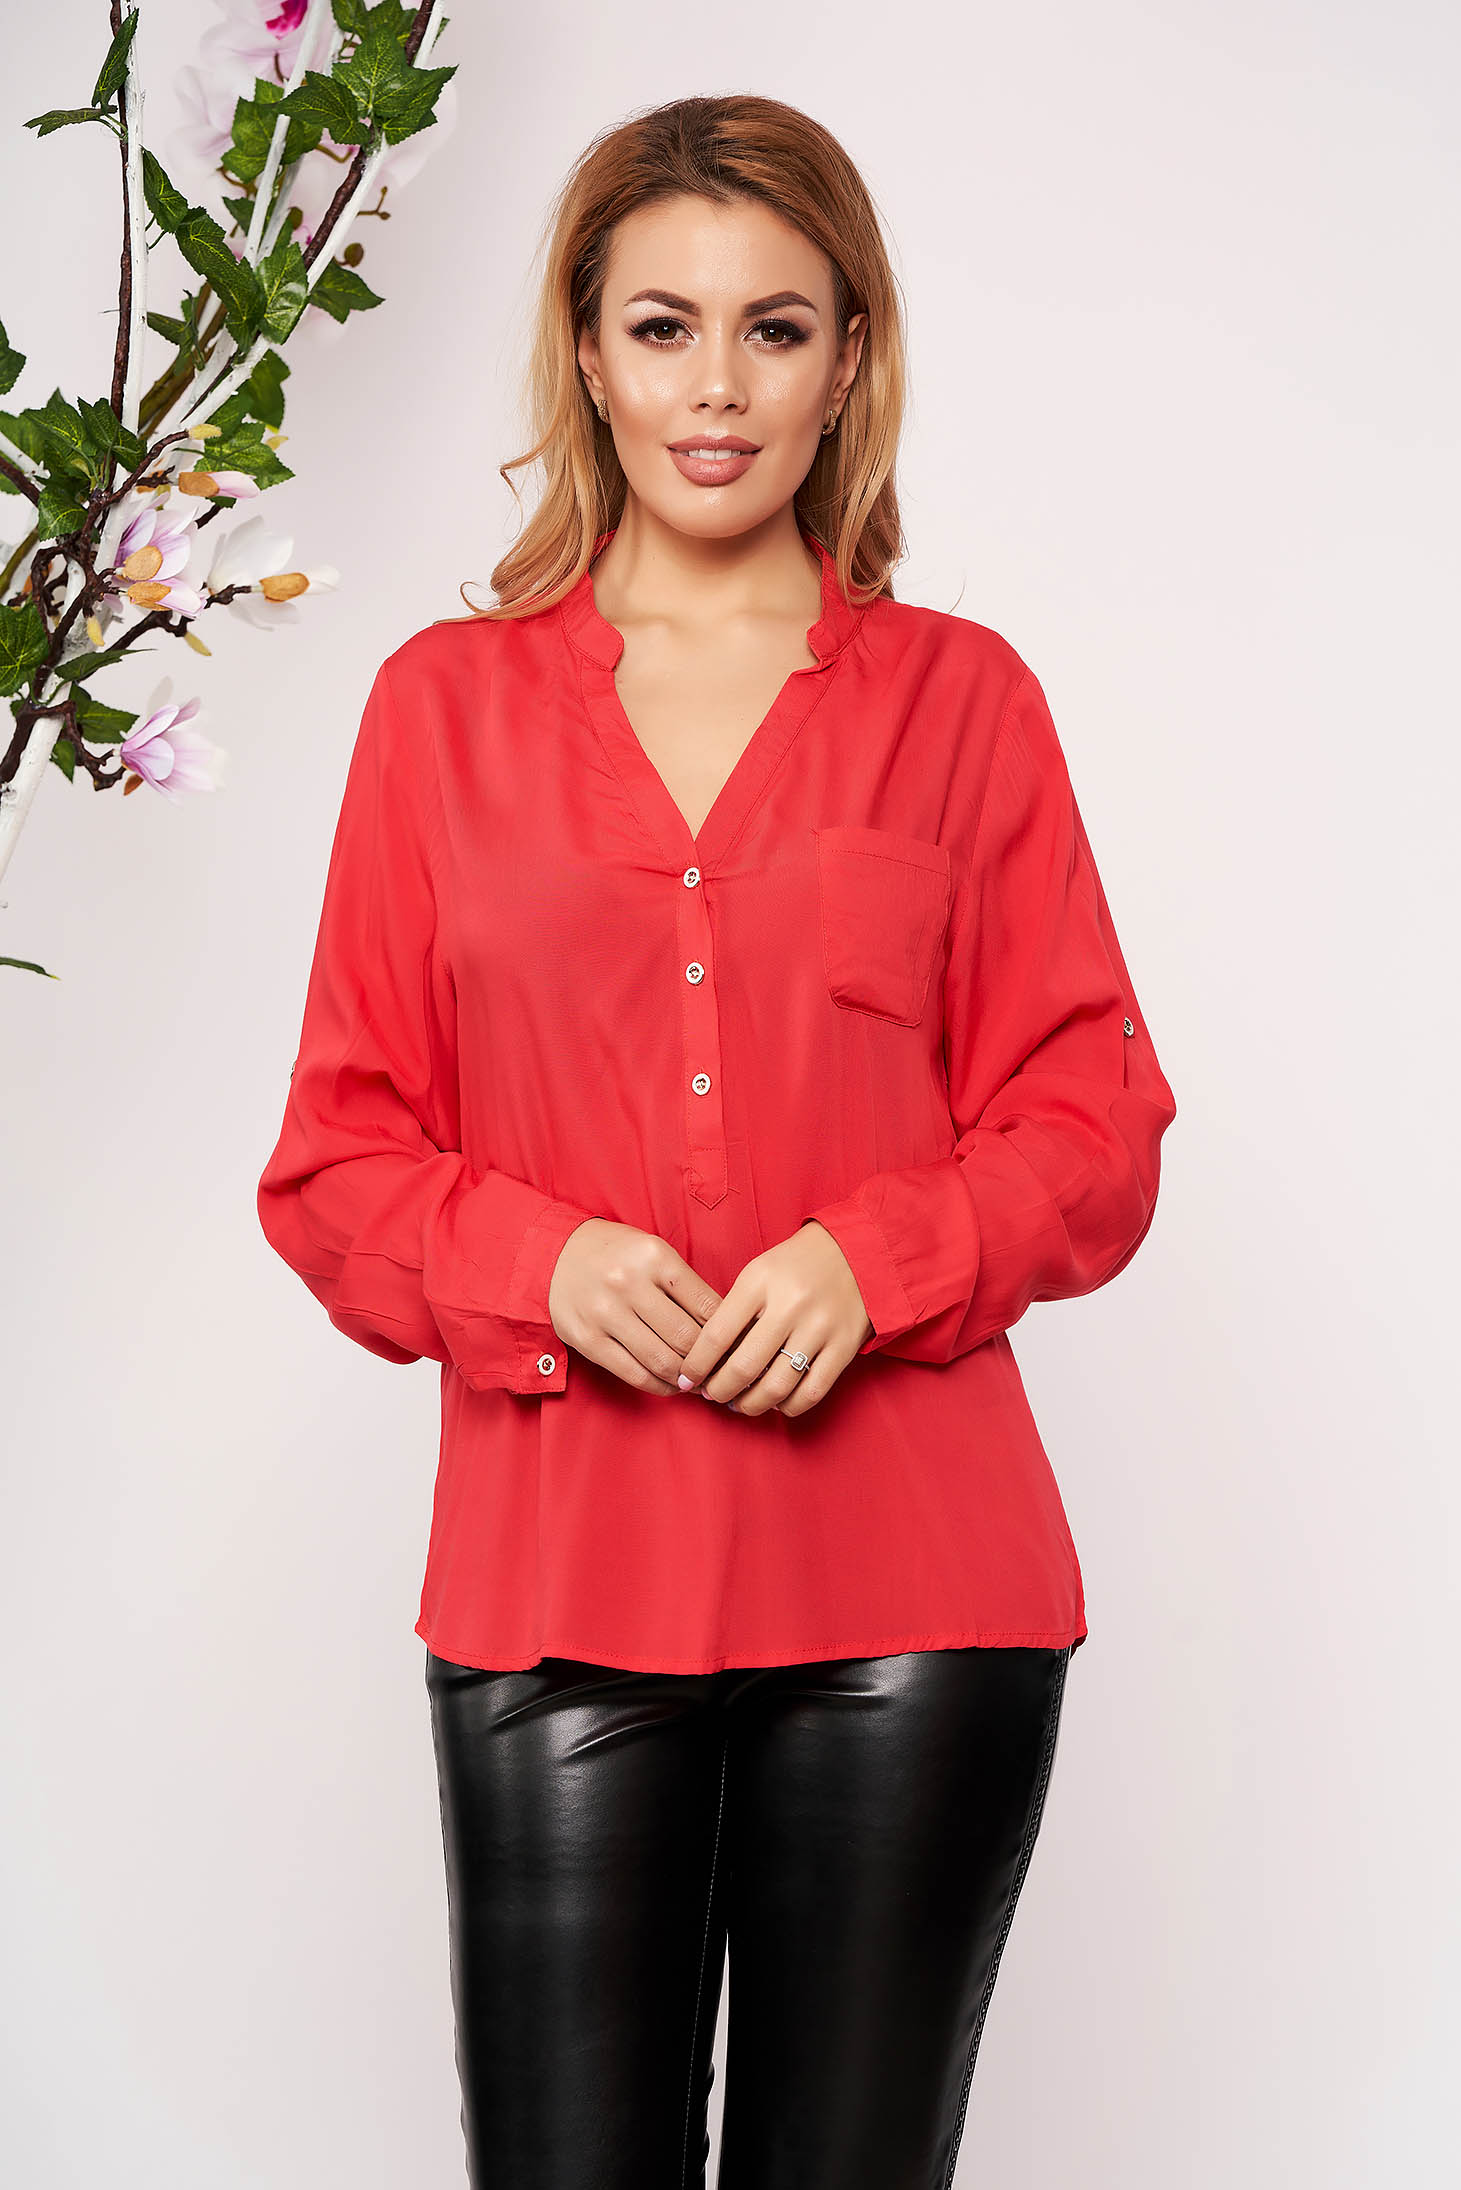 Red women`s shirt office short cut with v-neckline long sleeved thin fabric